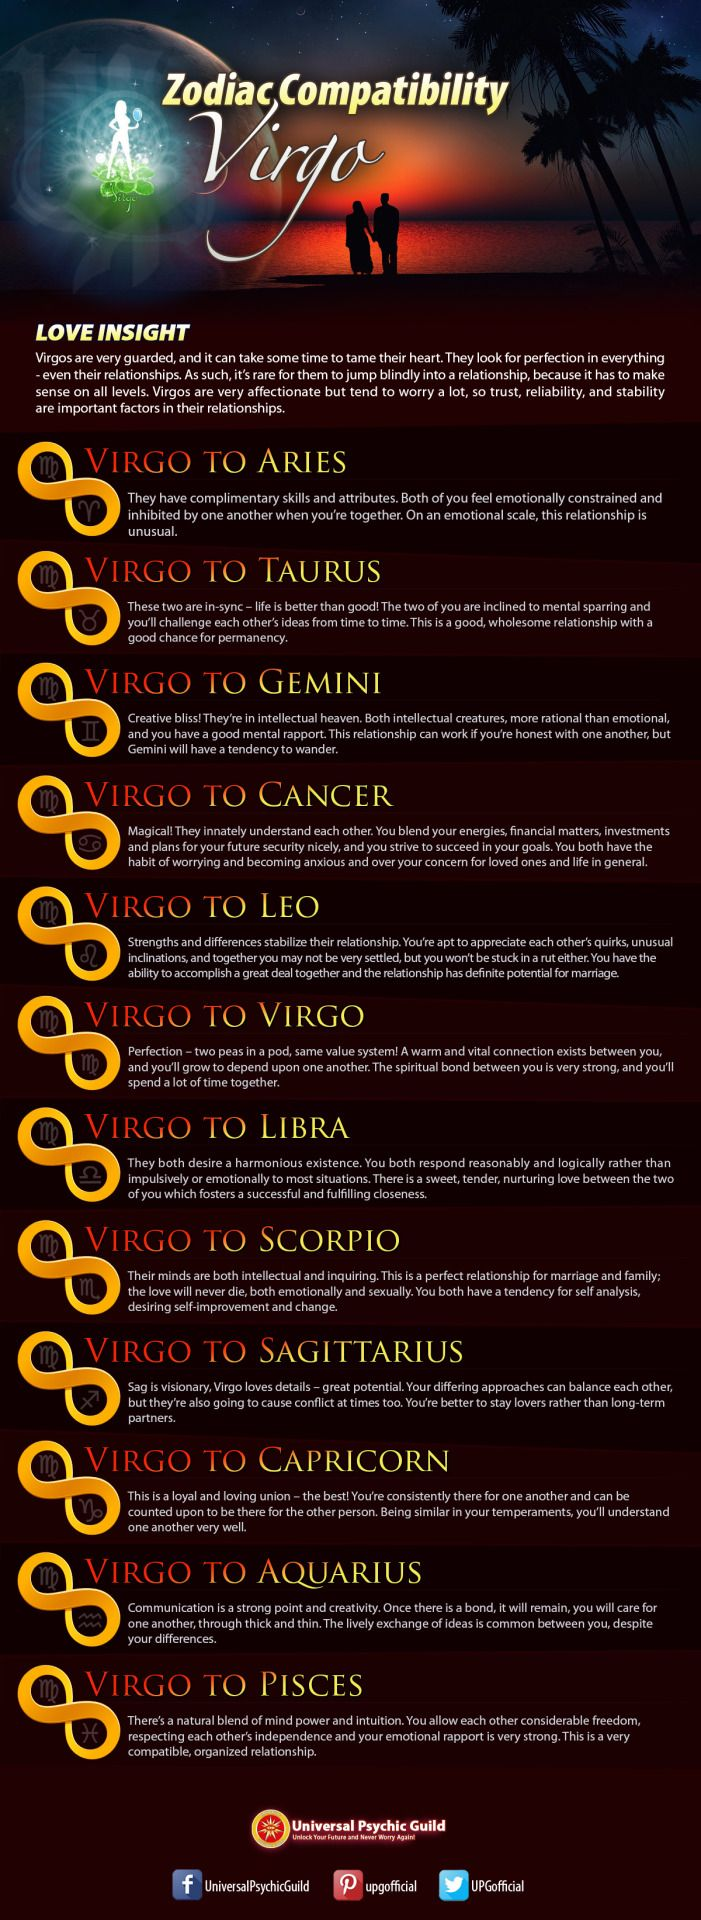 Check out our #Infographic: #Zodiac Compatibility for #Virgo. Read more at http://www.psychicguild.com/blog/zodiac-compatibility/virgo-the-perfectionist-heart/